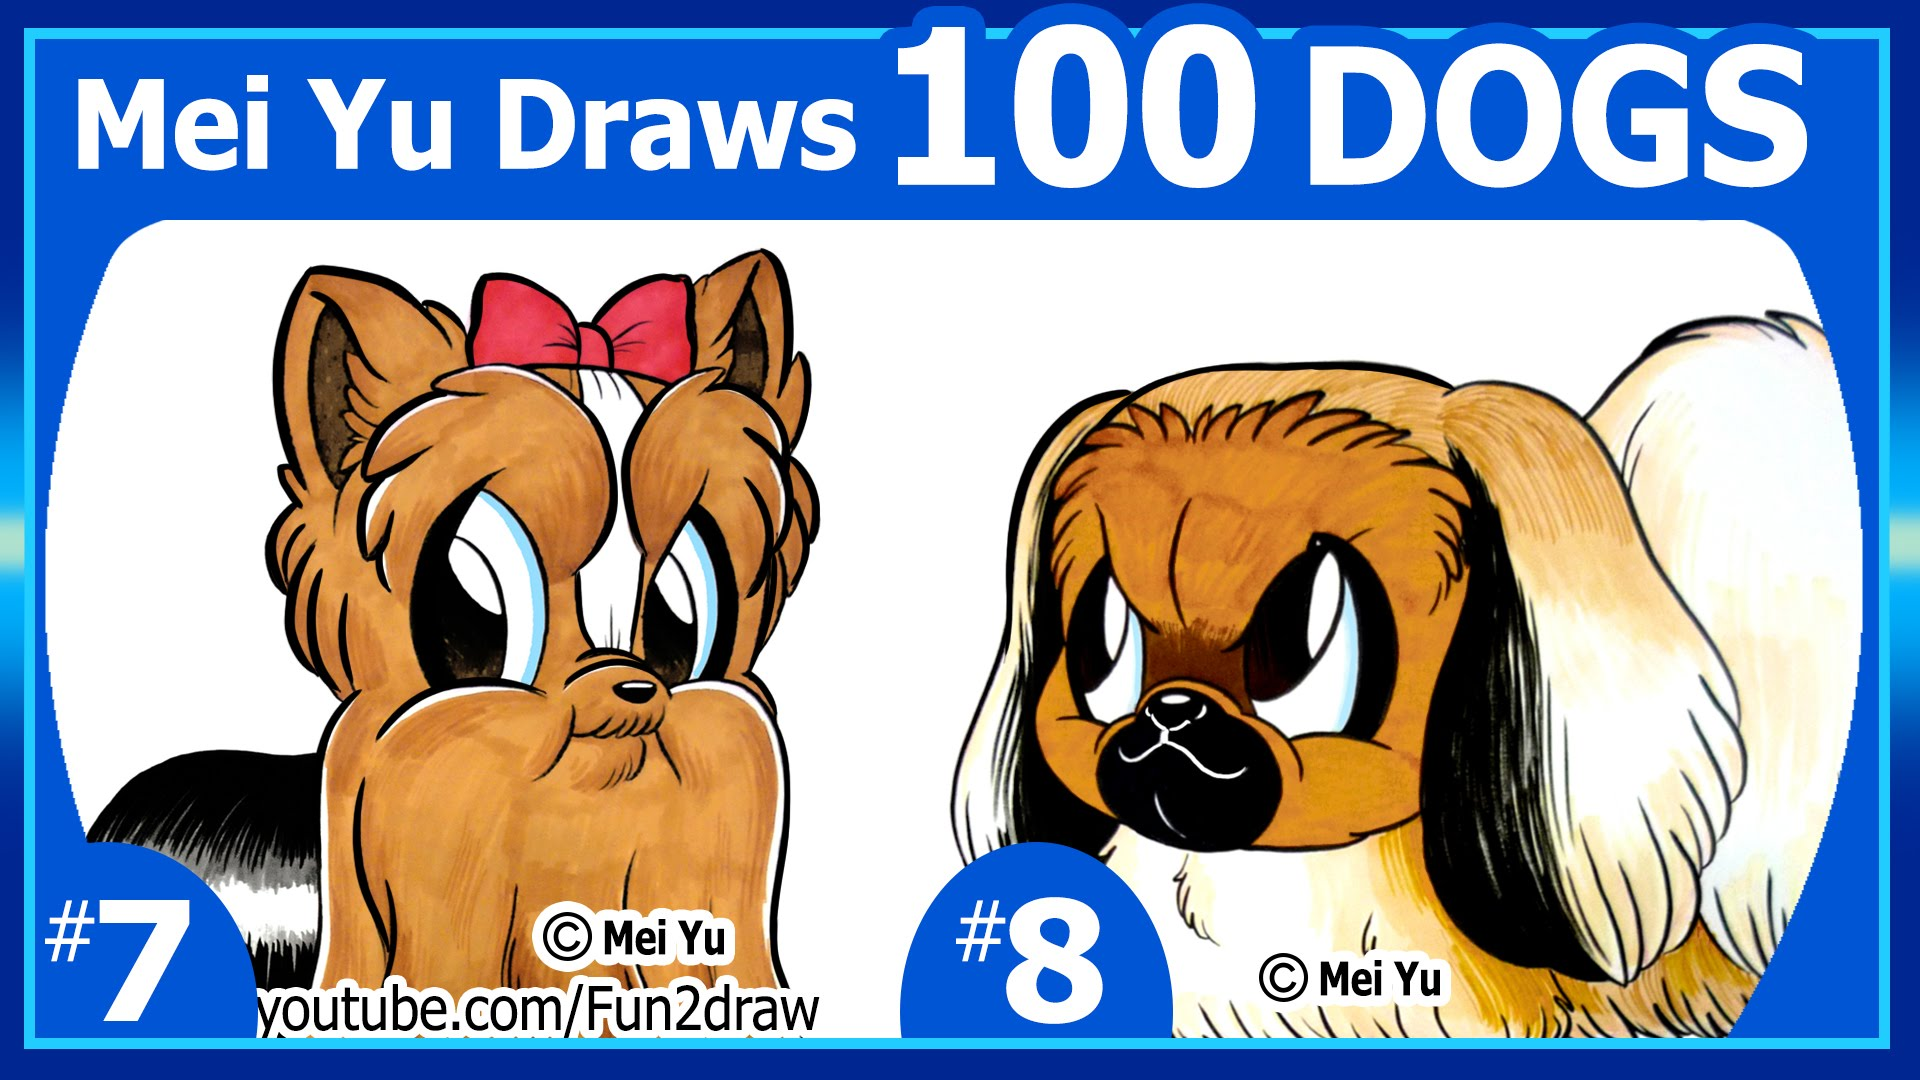 Drawn puppy fun2draw 100 DRAWINGS Cute  Yu